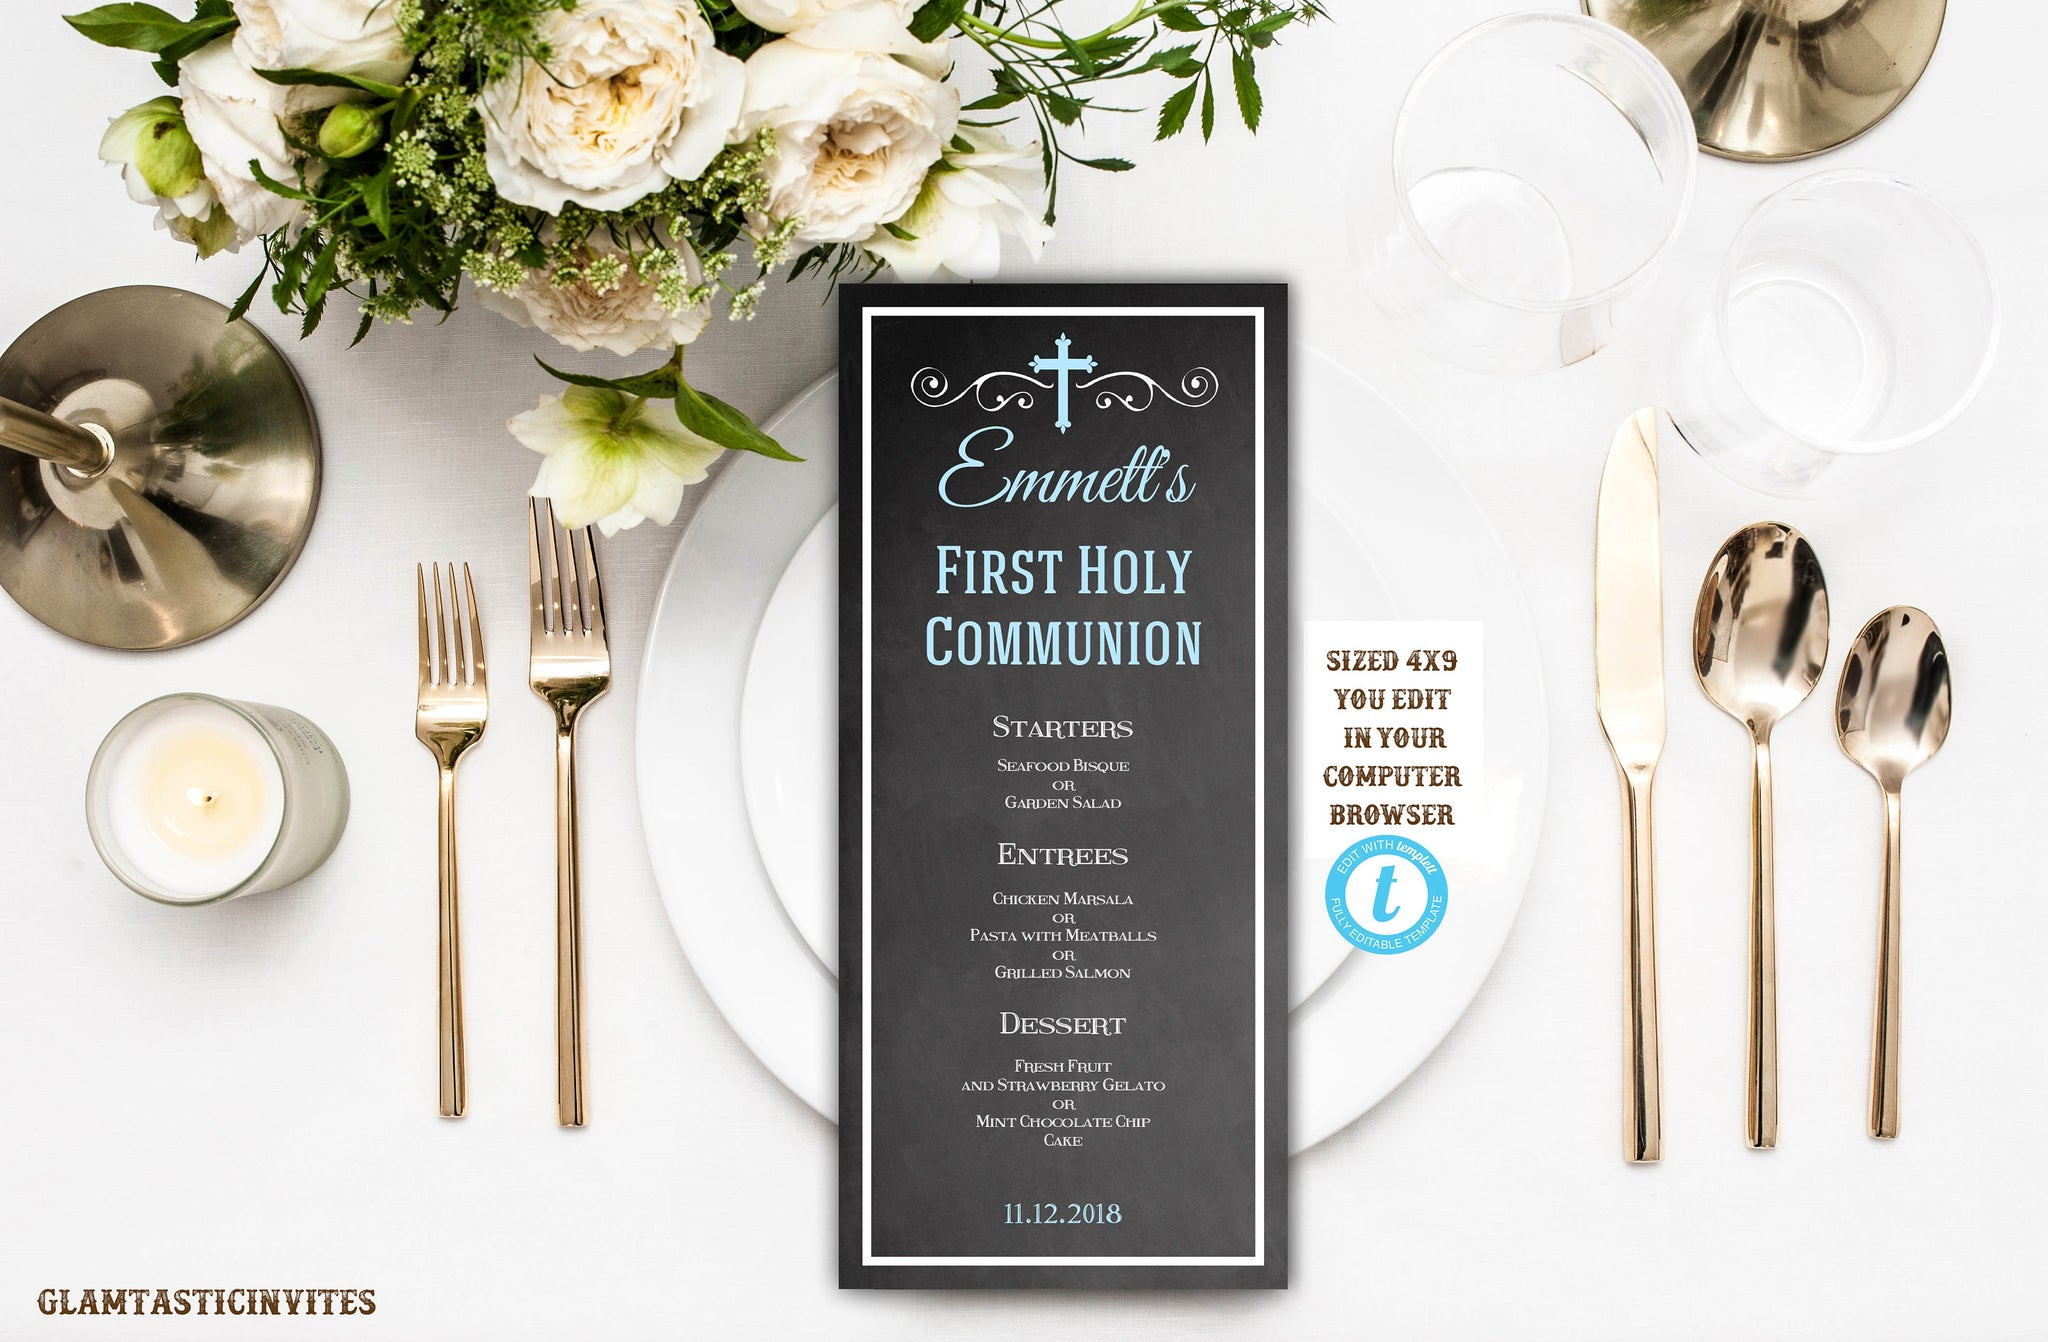 First Communion Menu Template, Instant Download, Editable, Printable, Communion, Baptism, Dedication, Religious Template, Template, DIY Menu